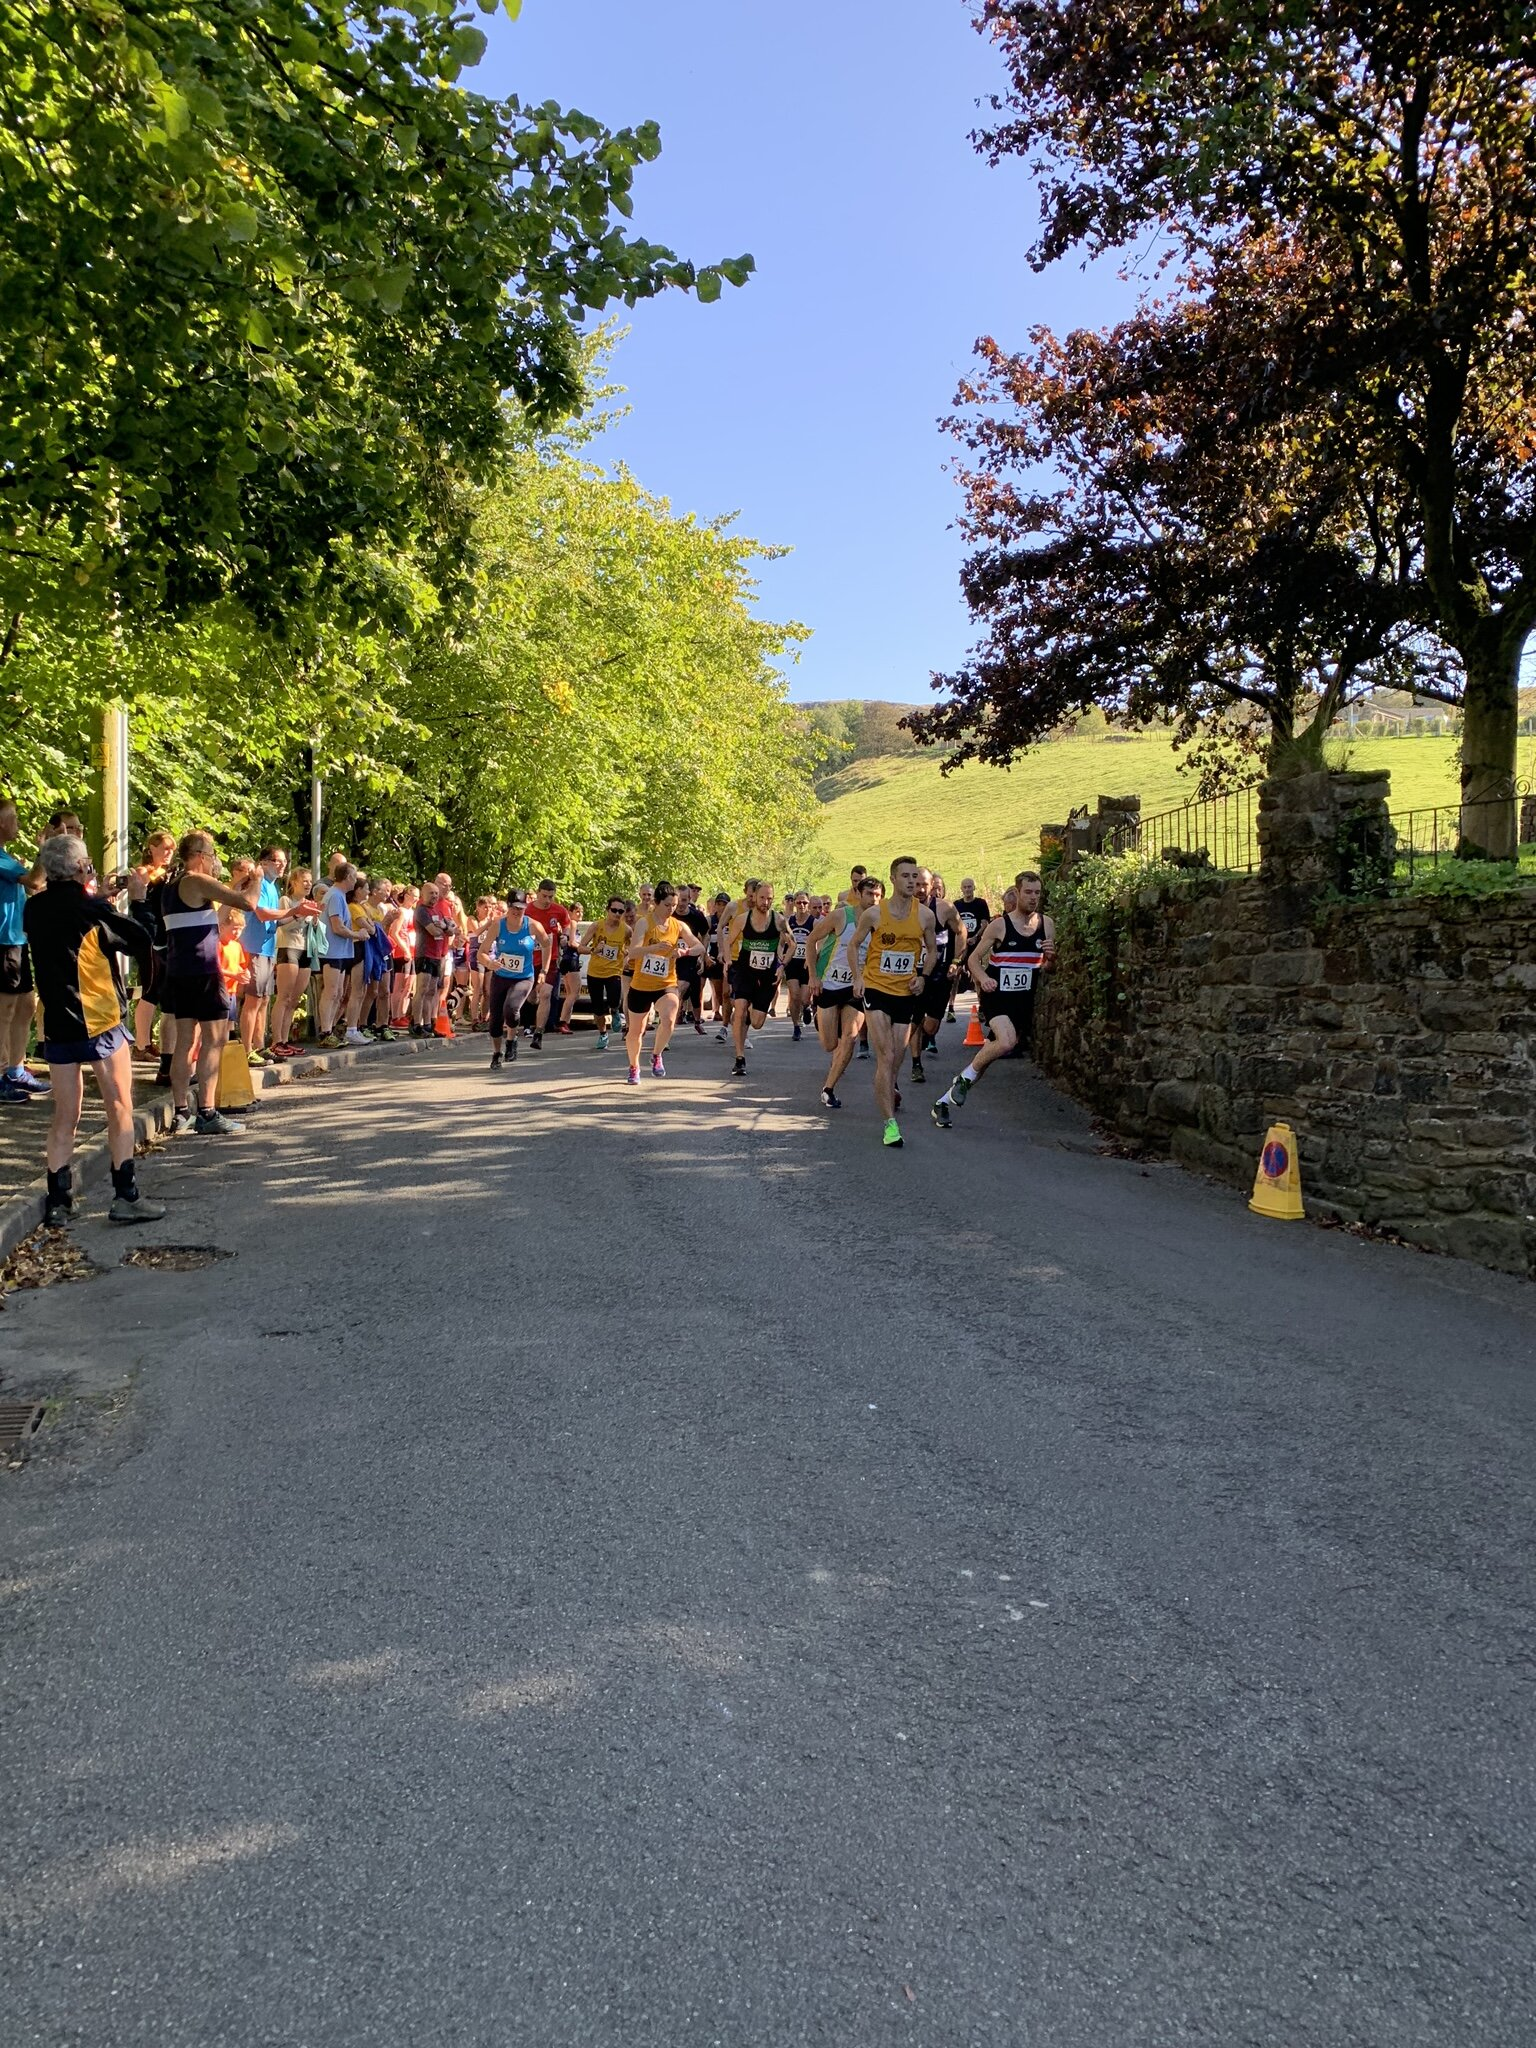 Start of the relay with the first road leg starting.